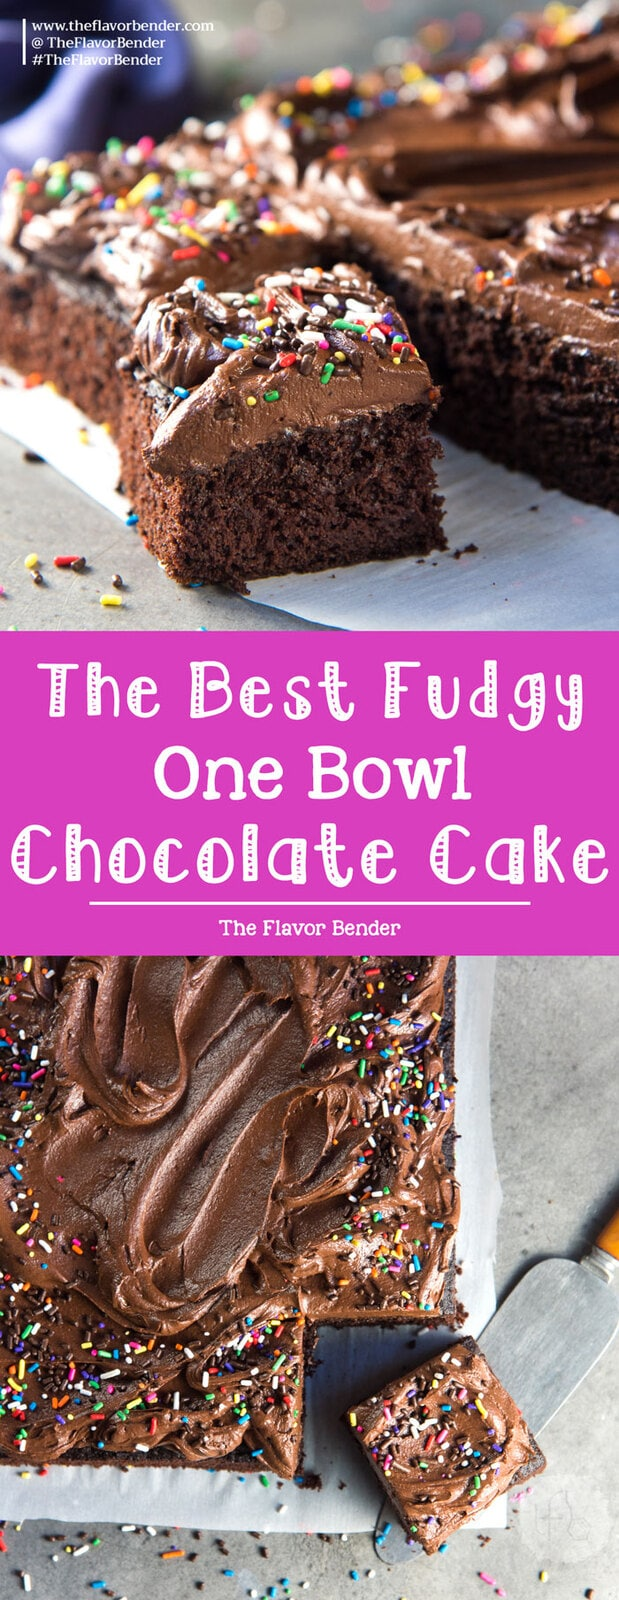 The Best One Bowl Chocolate Cake - A delicious fudgy chocolate sheet cake that is so easy to make. Top it up with a creamy chocolate buttercream frosting.  #BestChocolateCake #ChocolateSheetCake #FudgyChocolateCake